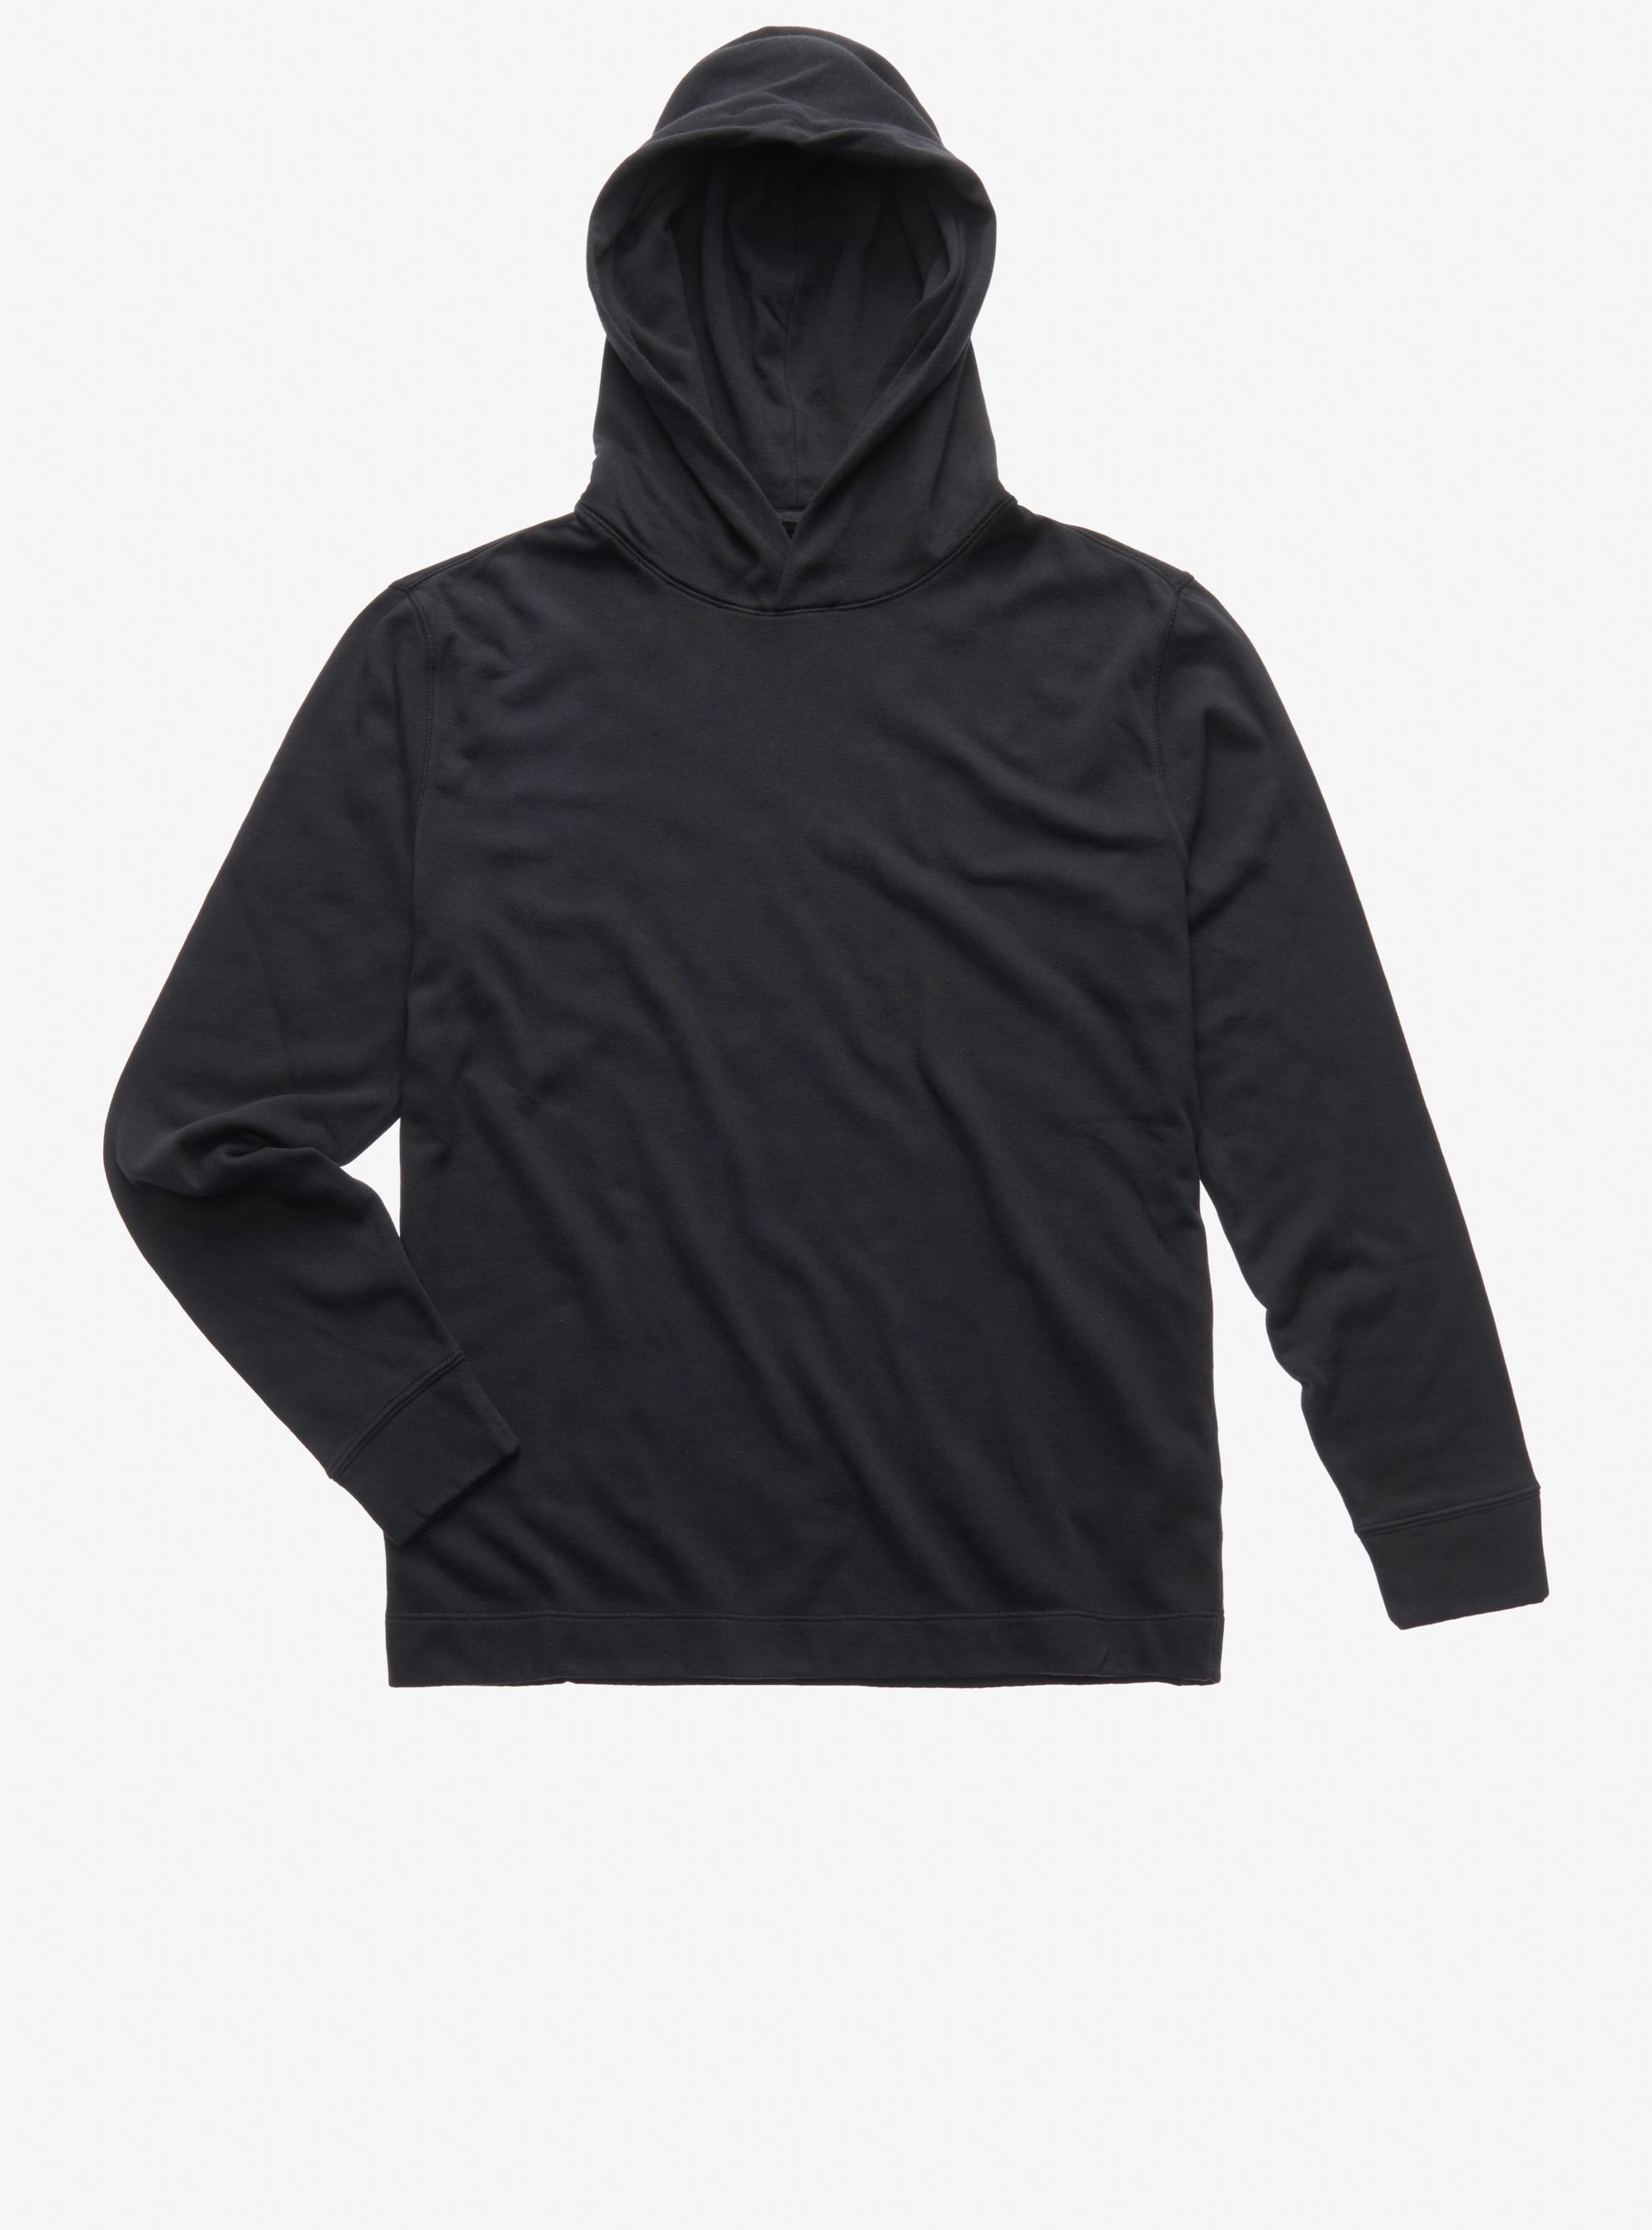 TEN C - DIPDYED SWEAT - Black - TEN C